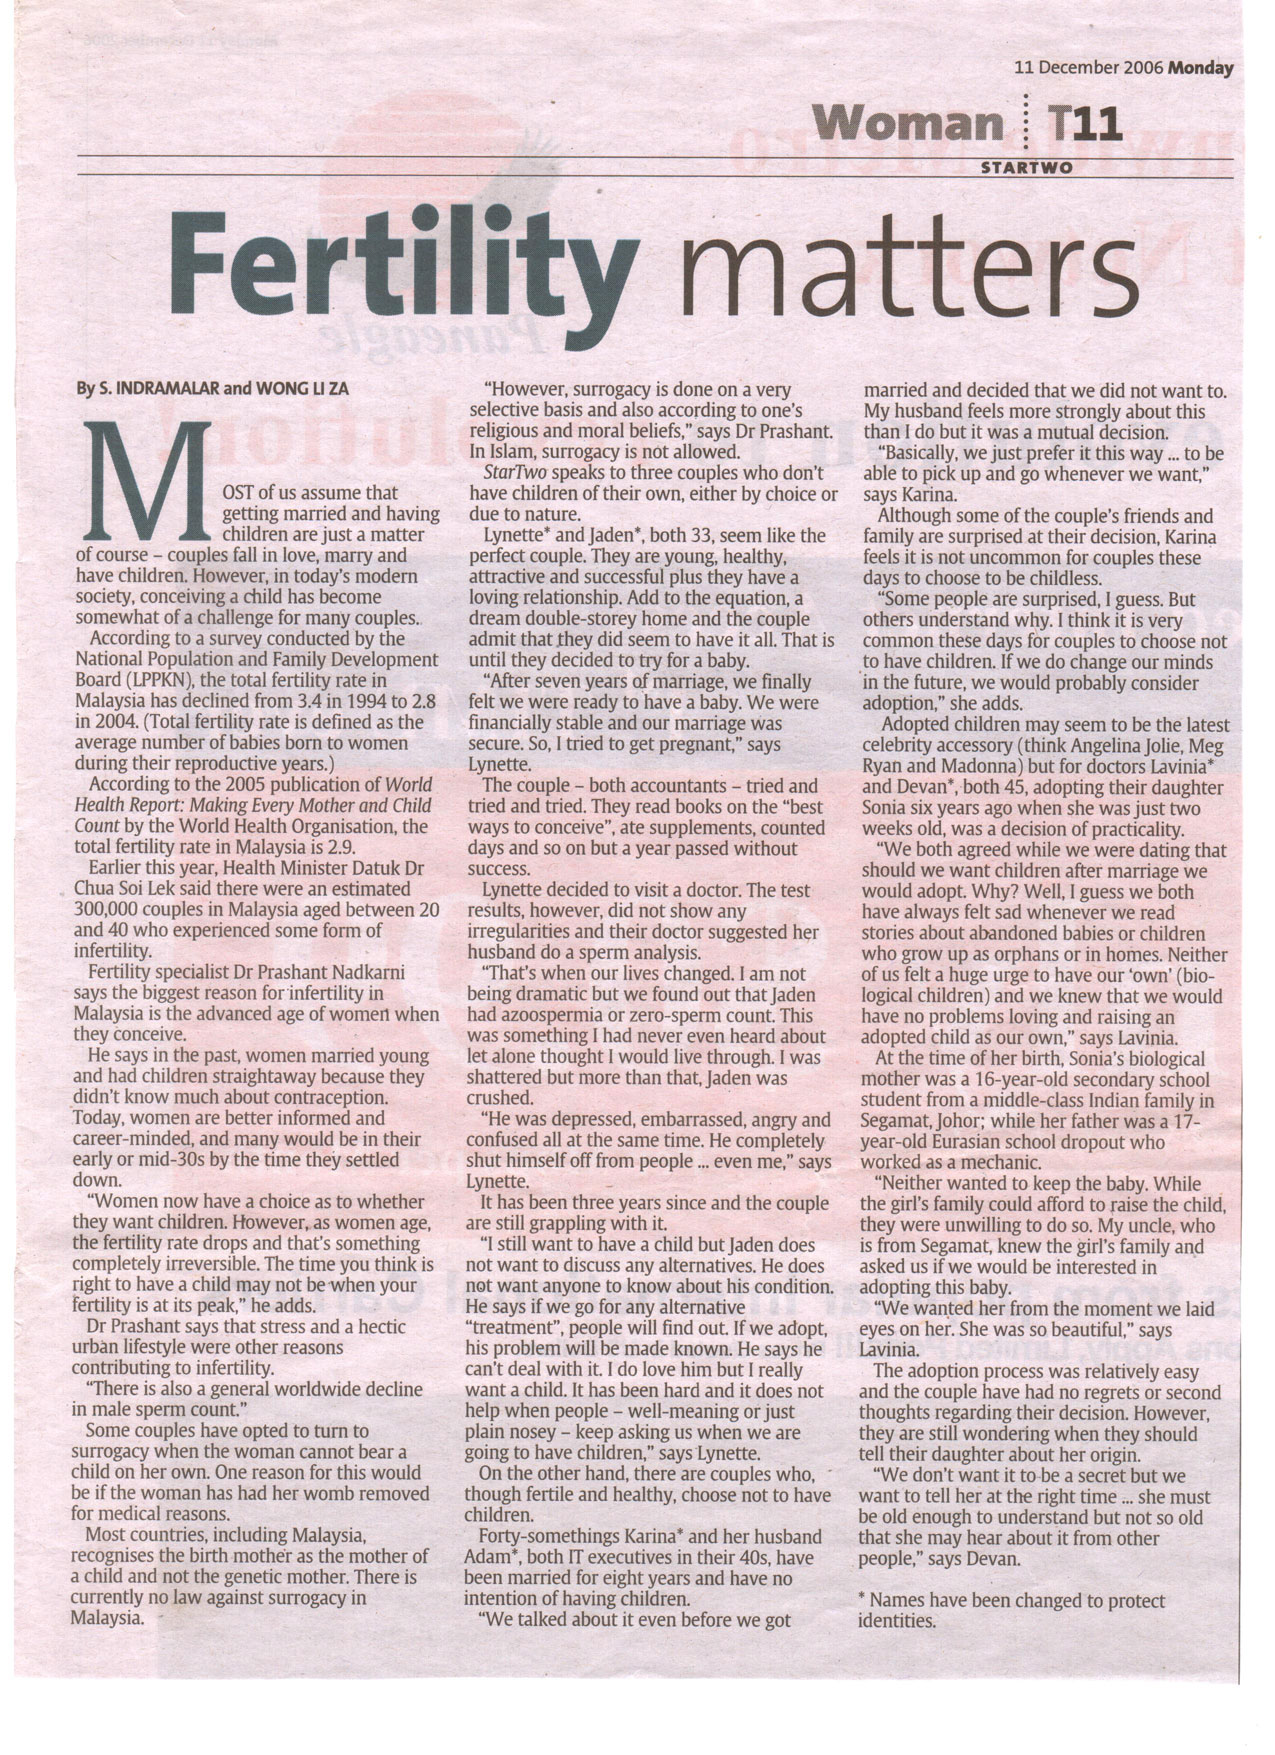 Fertility Matters - The Star Dec 2006